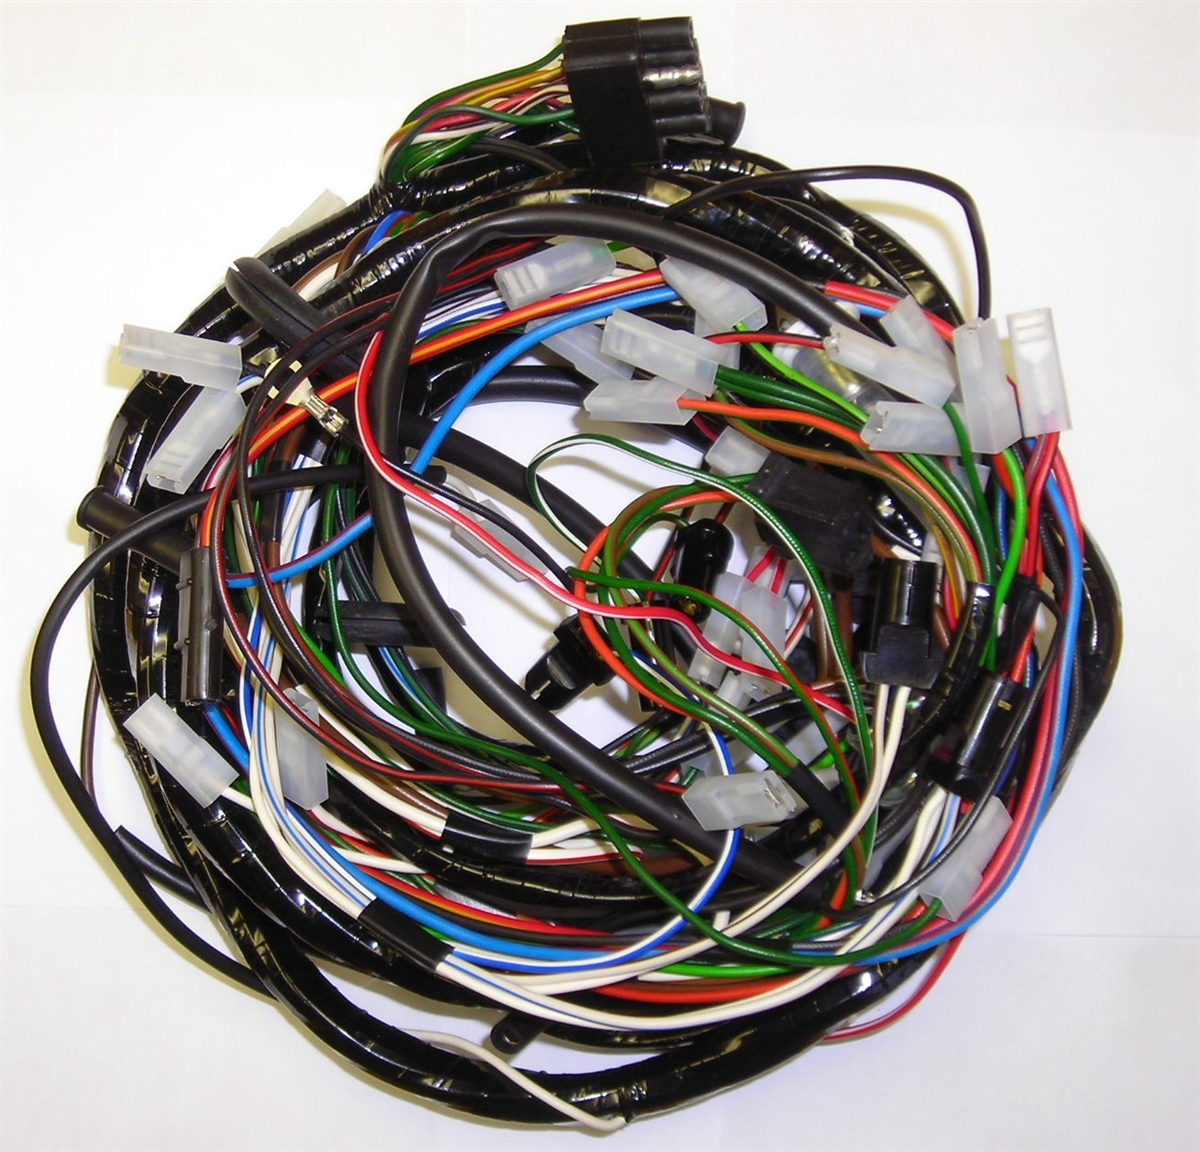 land rover series 3 main wiring harness land rover lr4 trailer wiring harness Land Rover Wiring Harness #7